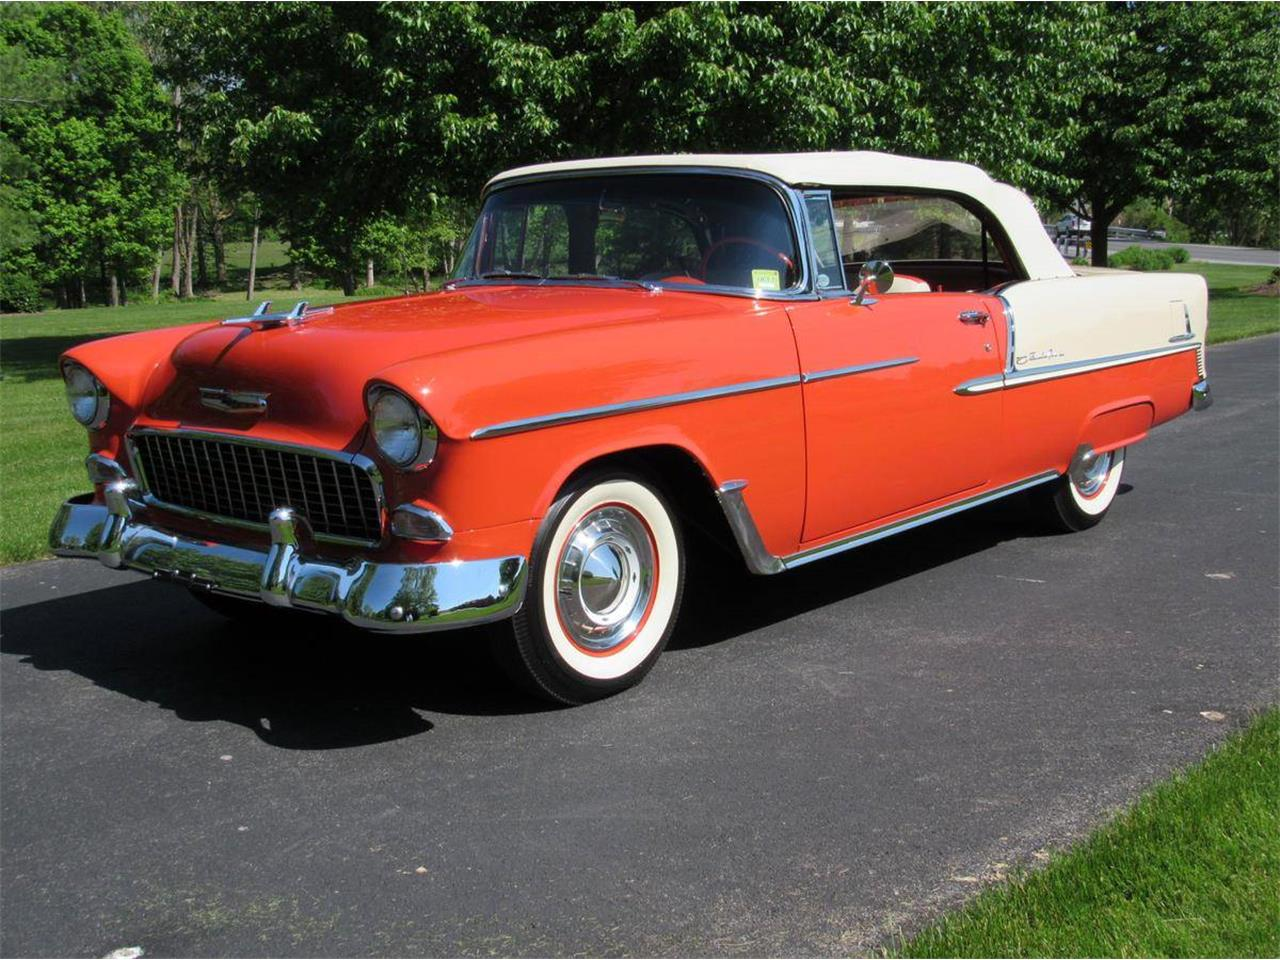 1955 Chevrolet Bel Air (CC-1022319) for sale in MILL HALL, Pennsylvania